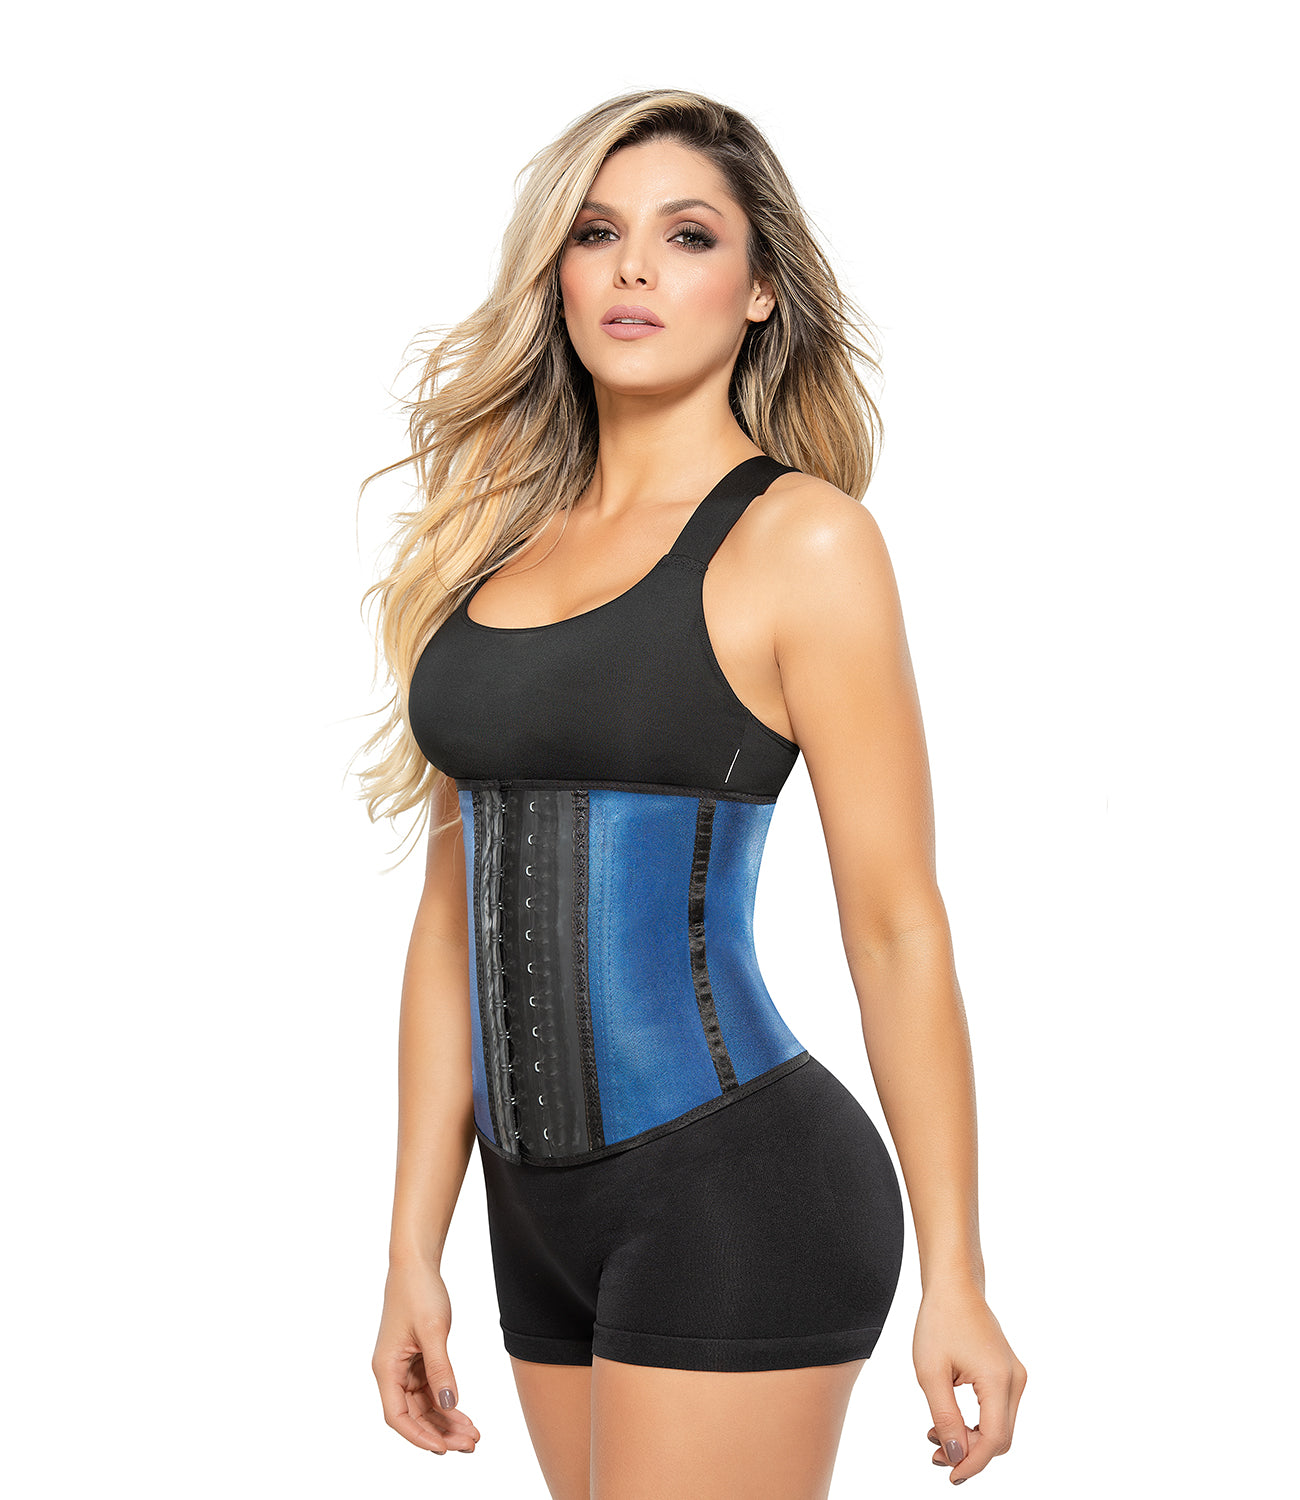 Ann Chery 2039 Metallic Edition Blue Workout Faja Deportiva Women Latex Waist Trainer